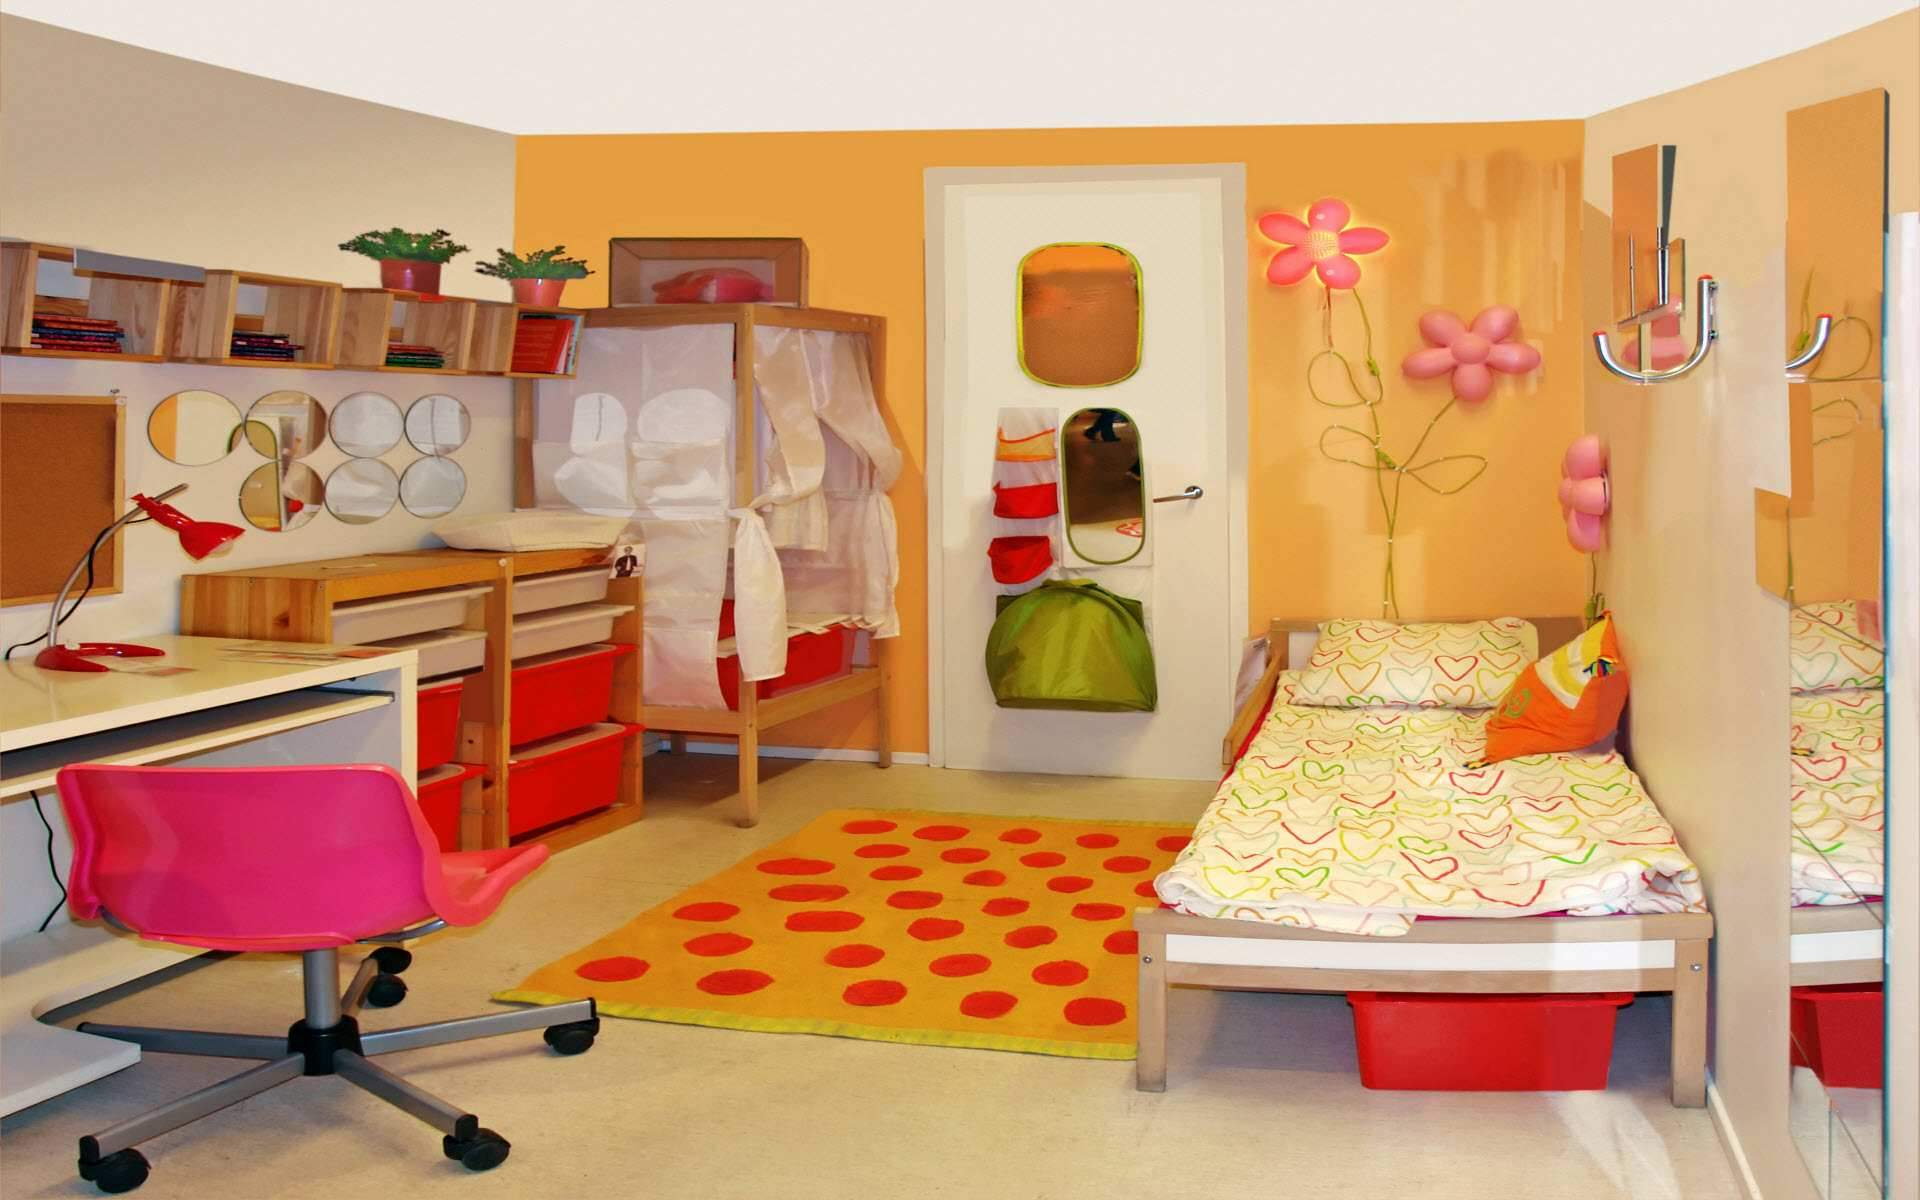 Kids room decorating ideas design ideas for kids rooms space saving long hairstyles - Child bedroom decor ...